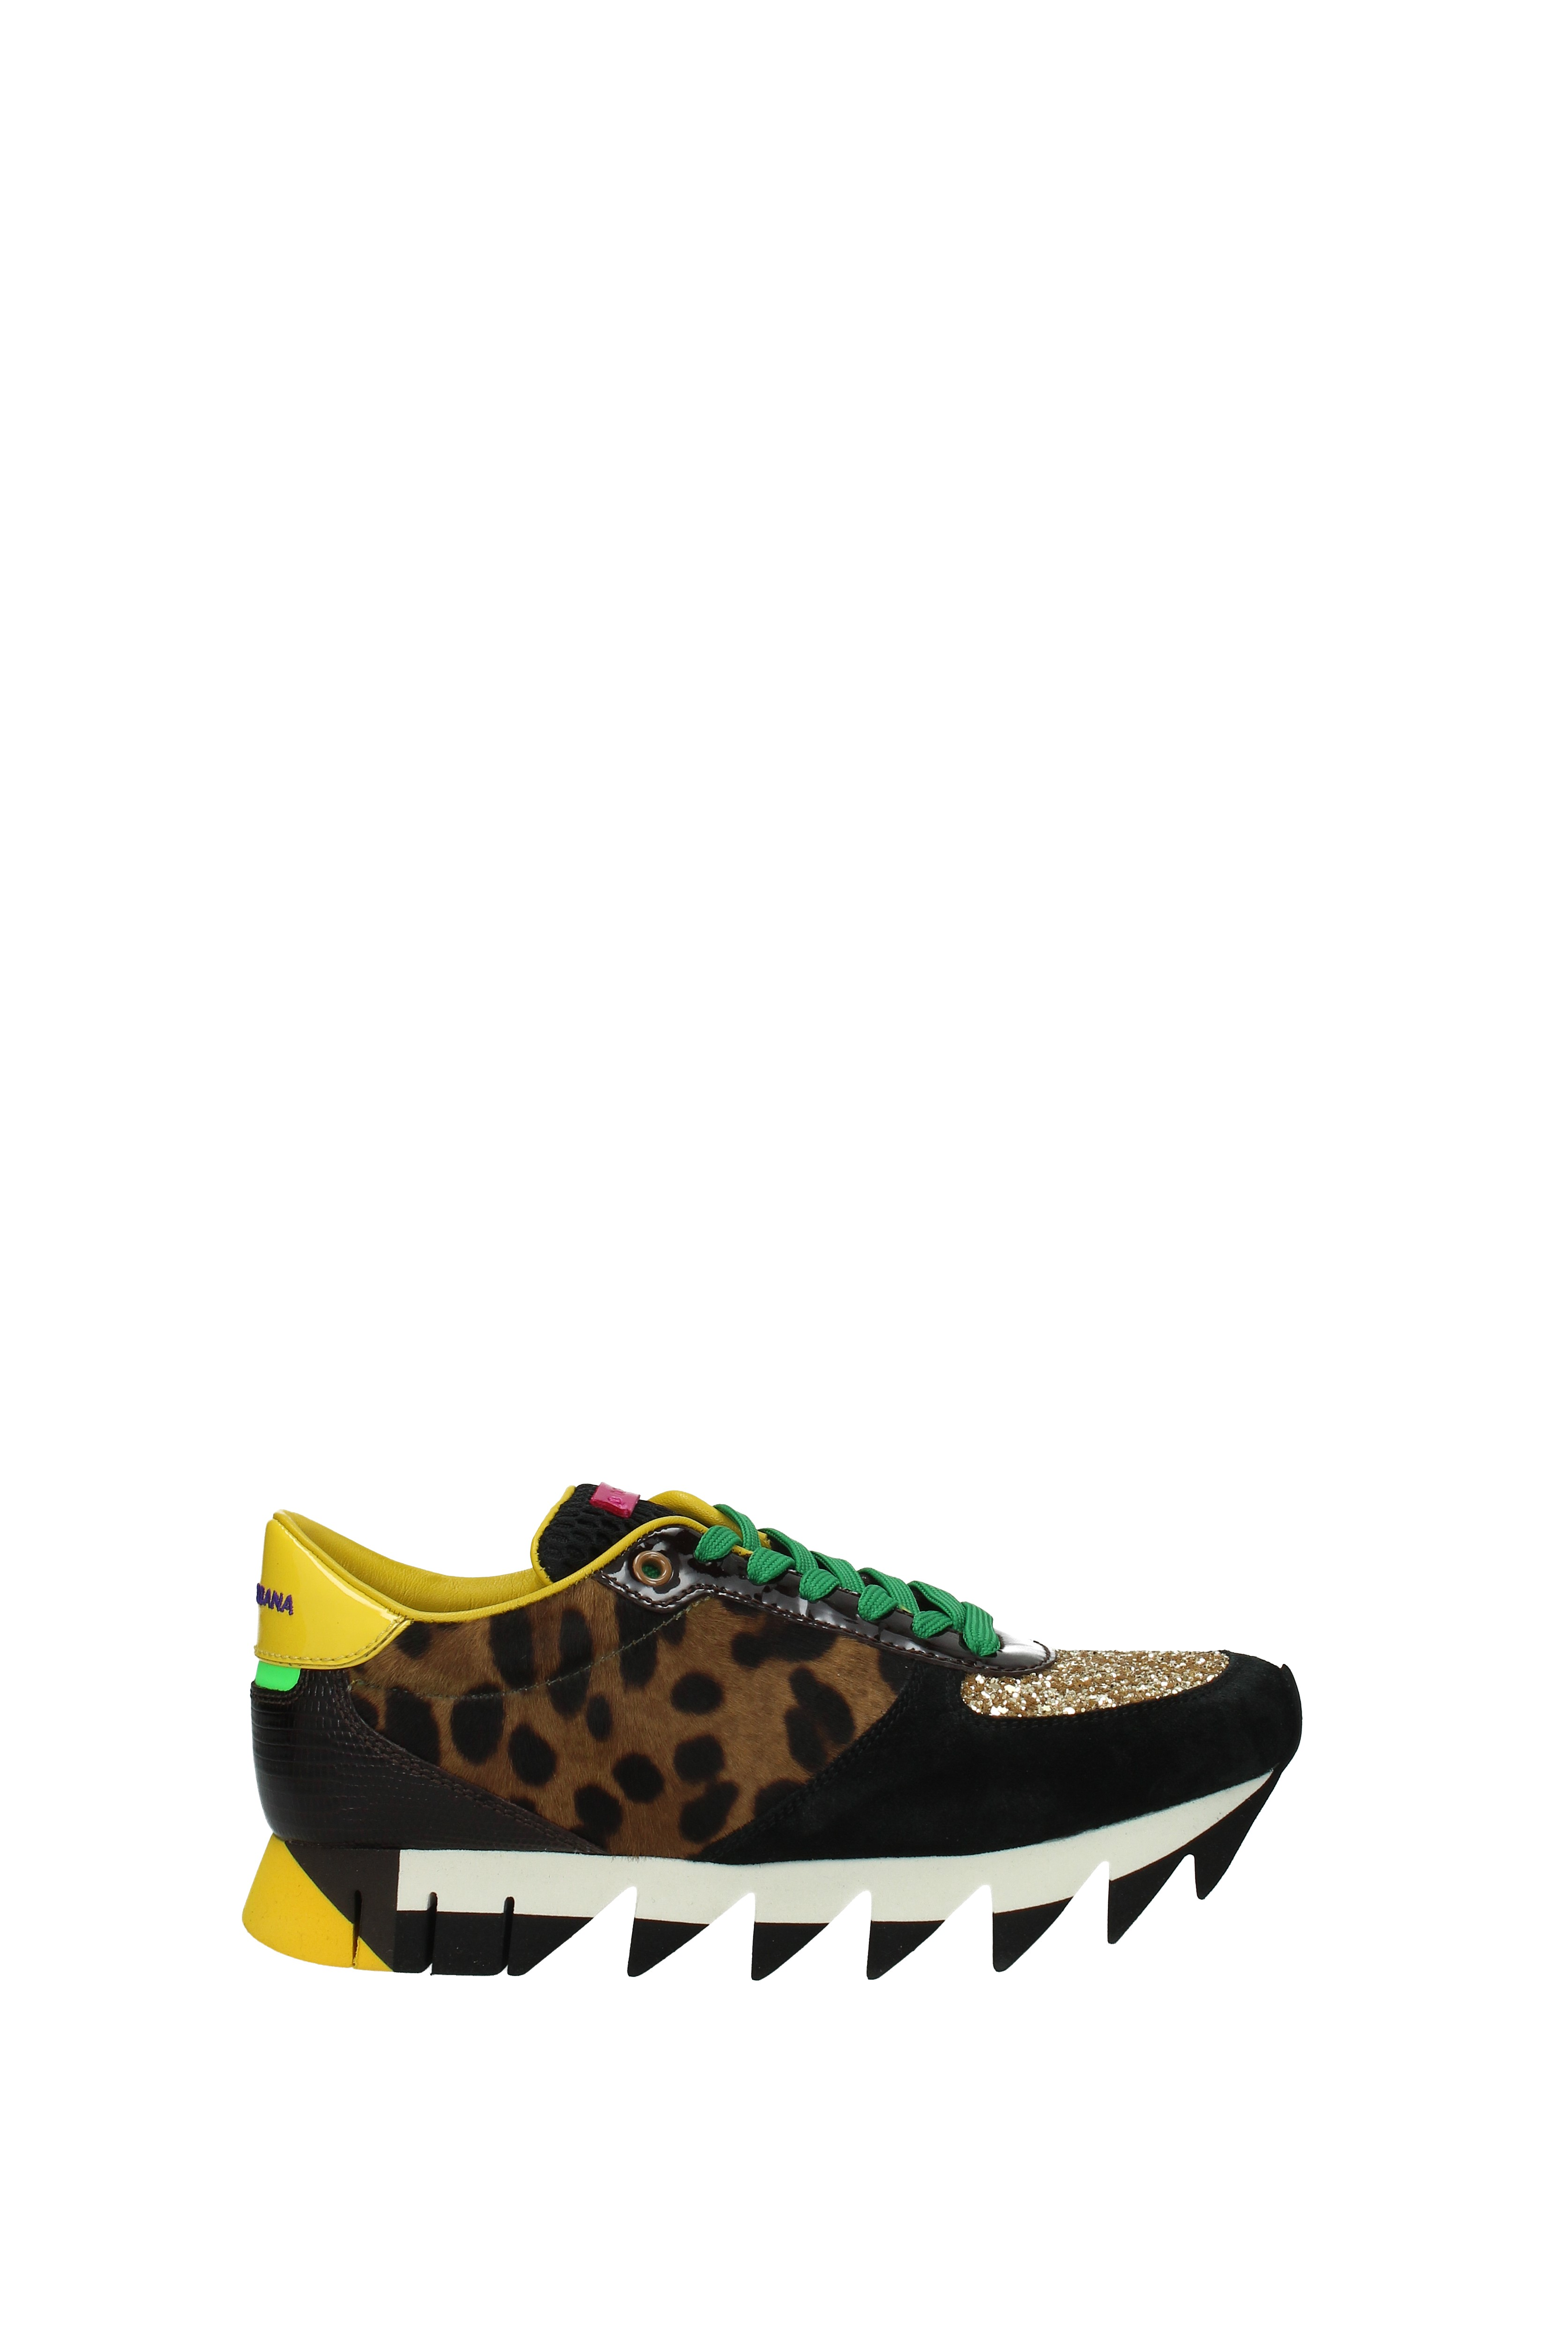 Sneakers Dolce&Gabbana Dolce&Gabbana Sneakers Damen - Ponyfell (CK0079AE312) d0e1a3